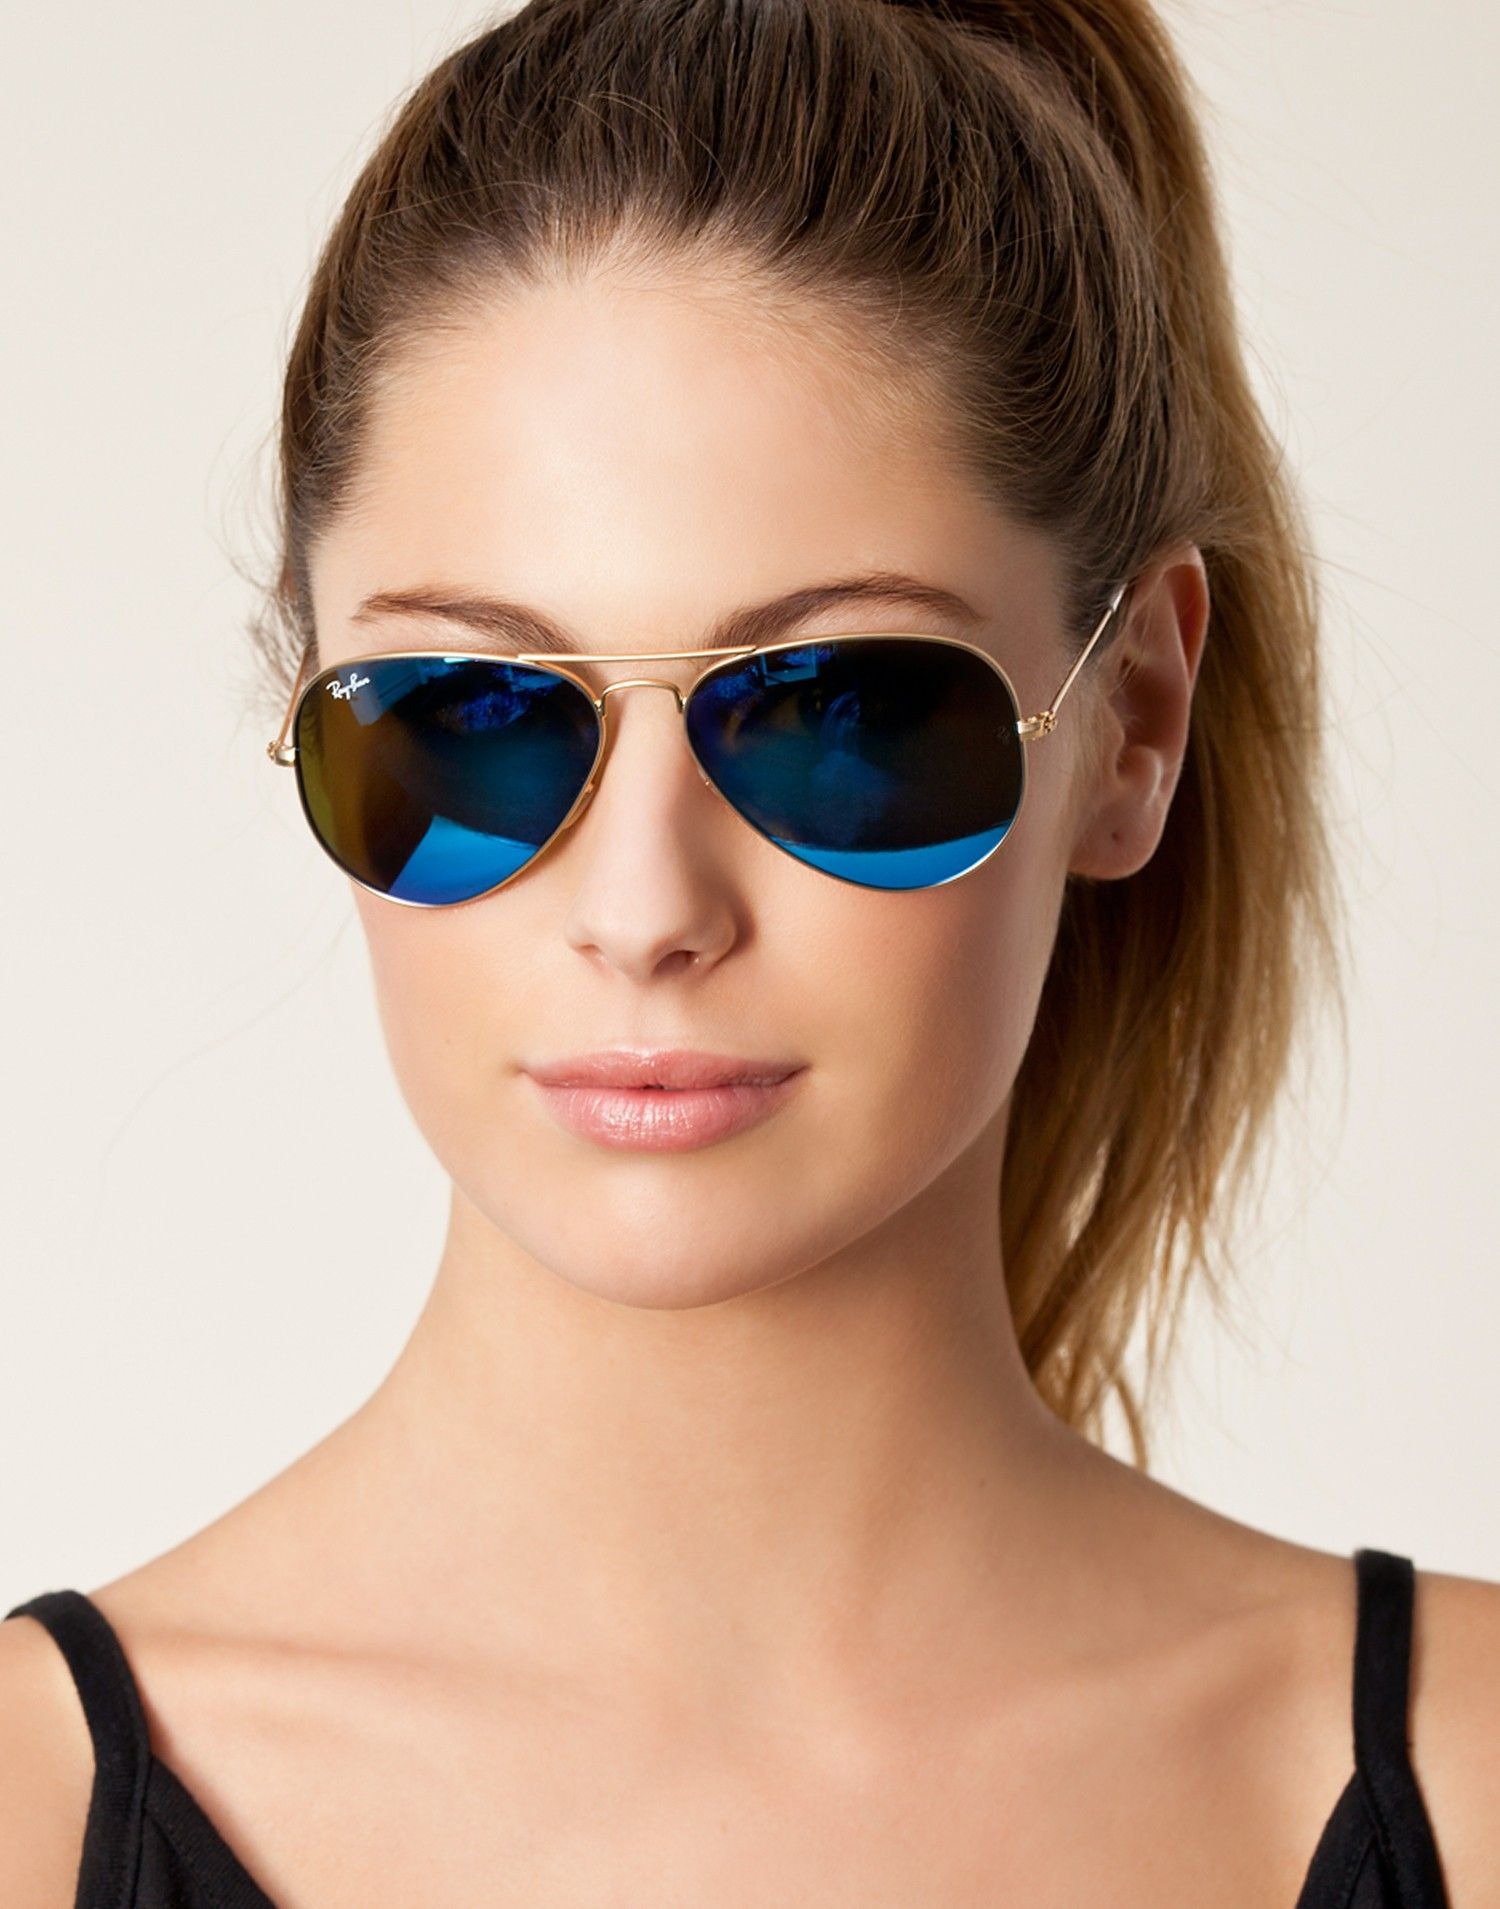 fe1953842b Sunglasses by RAY-BAN RB model 3025 in in aviator style. Description from  polyvore.com. I searched for this on bing.com images